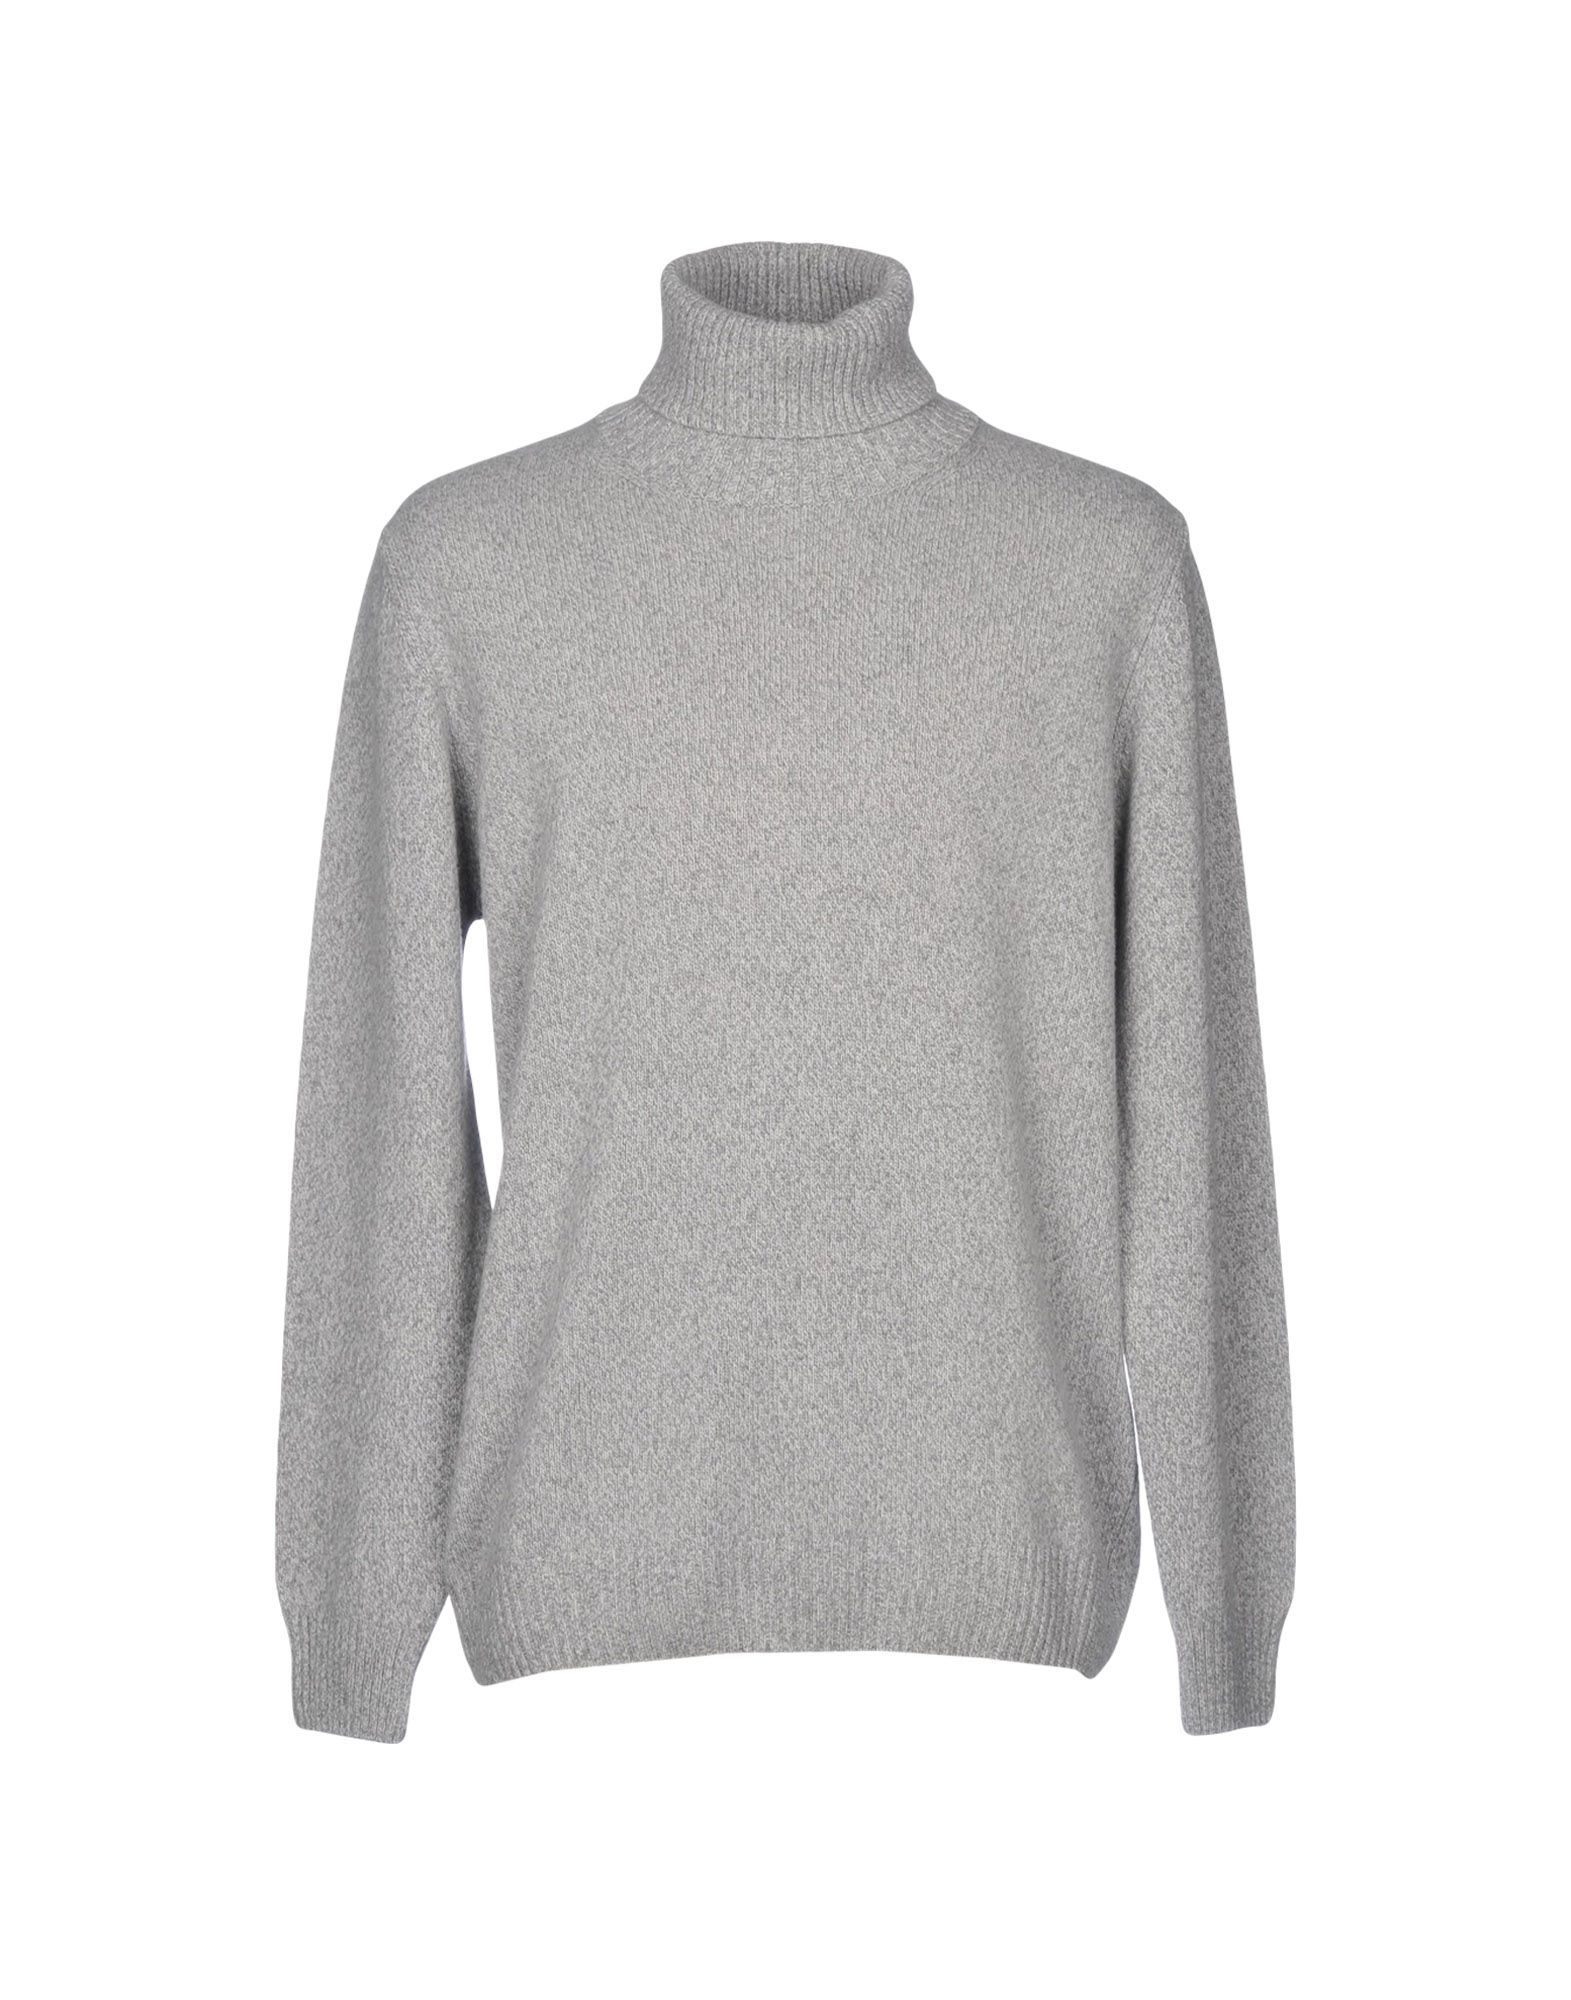 DAVIDE MONACHINO CASHMERE Водолазки davide monachino cashmere кардиган